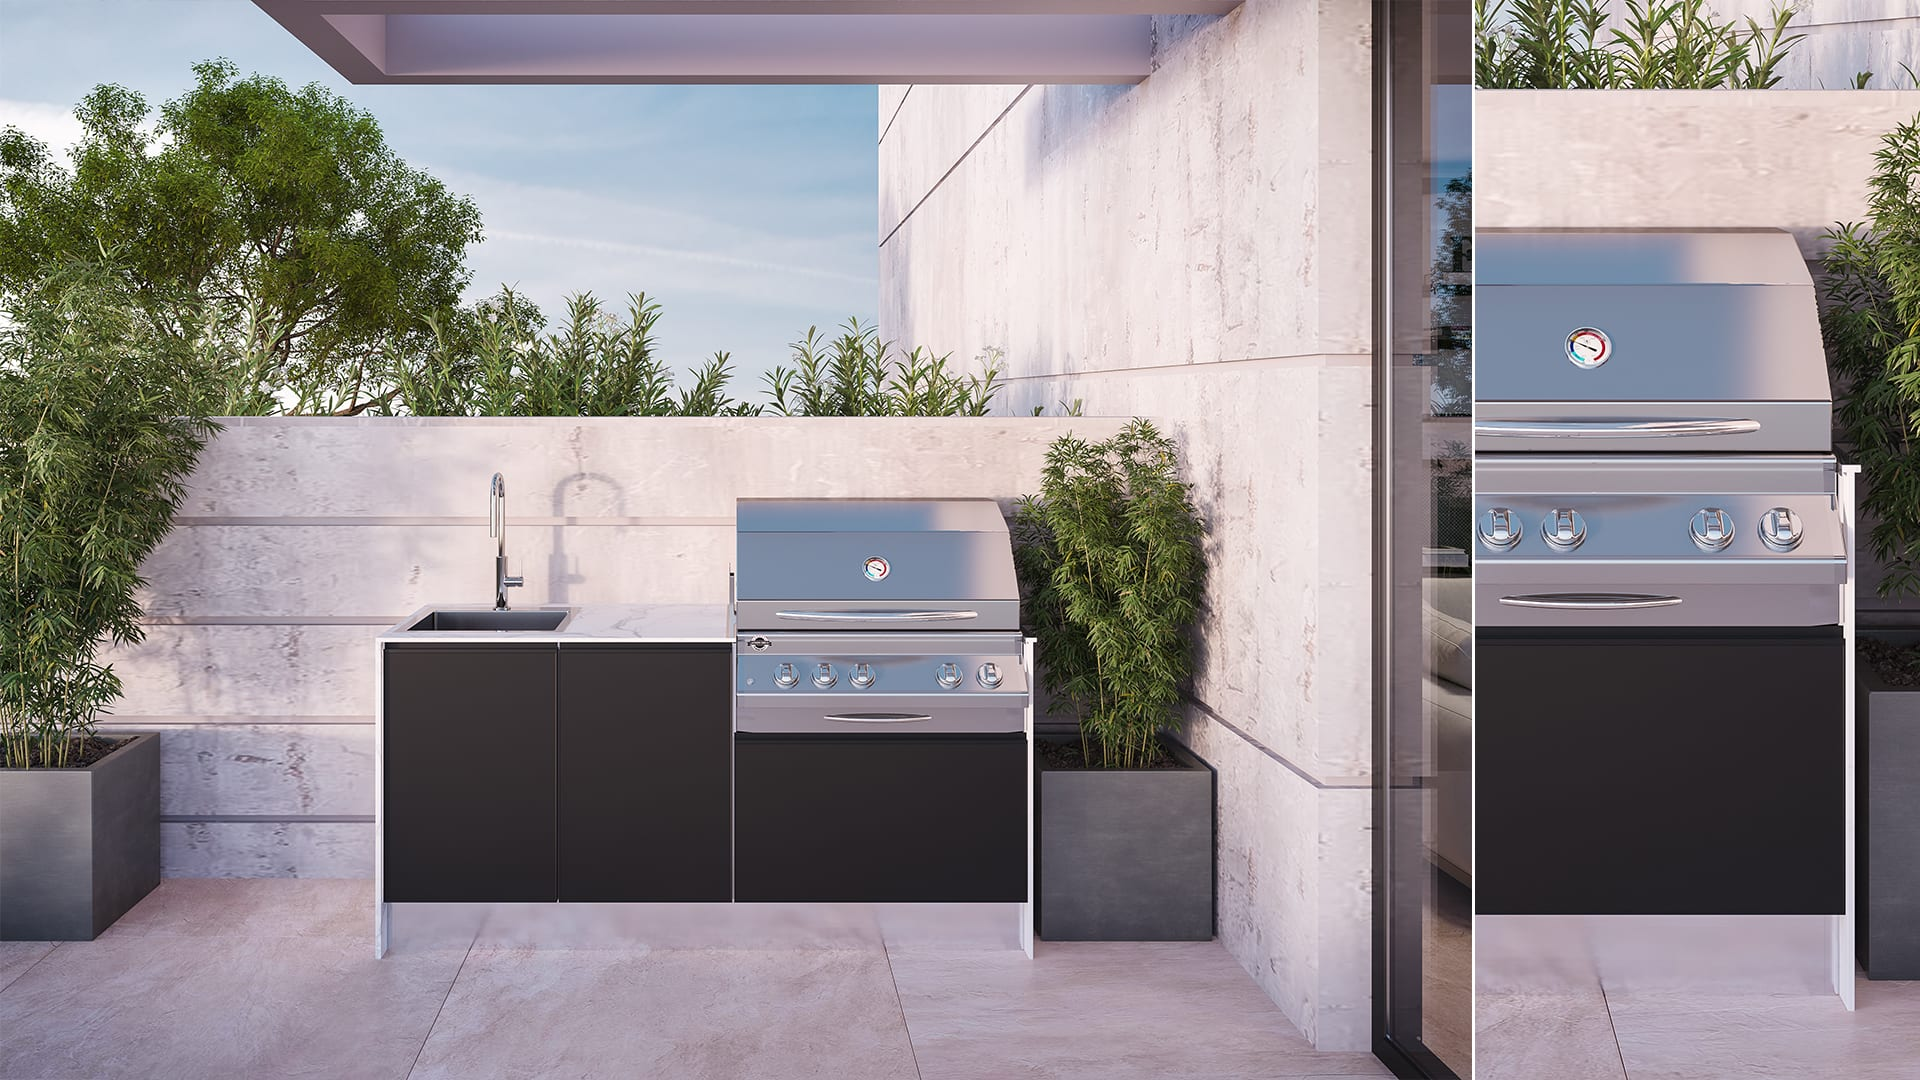 Maayan-Golan_Architectural-Visualization_product-visualization_outdoor-kitchen_alumex-by-formex_barkan-kitchen_05